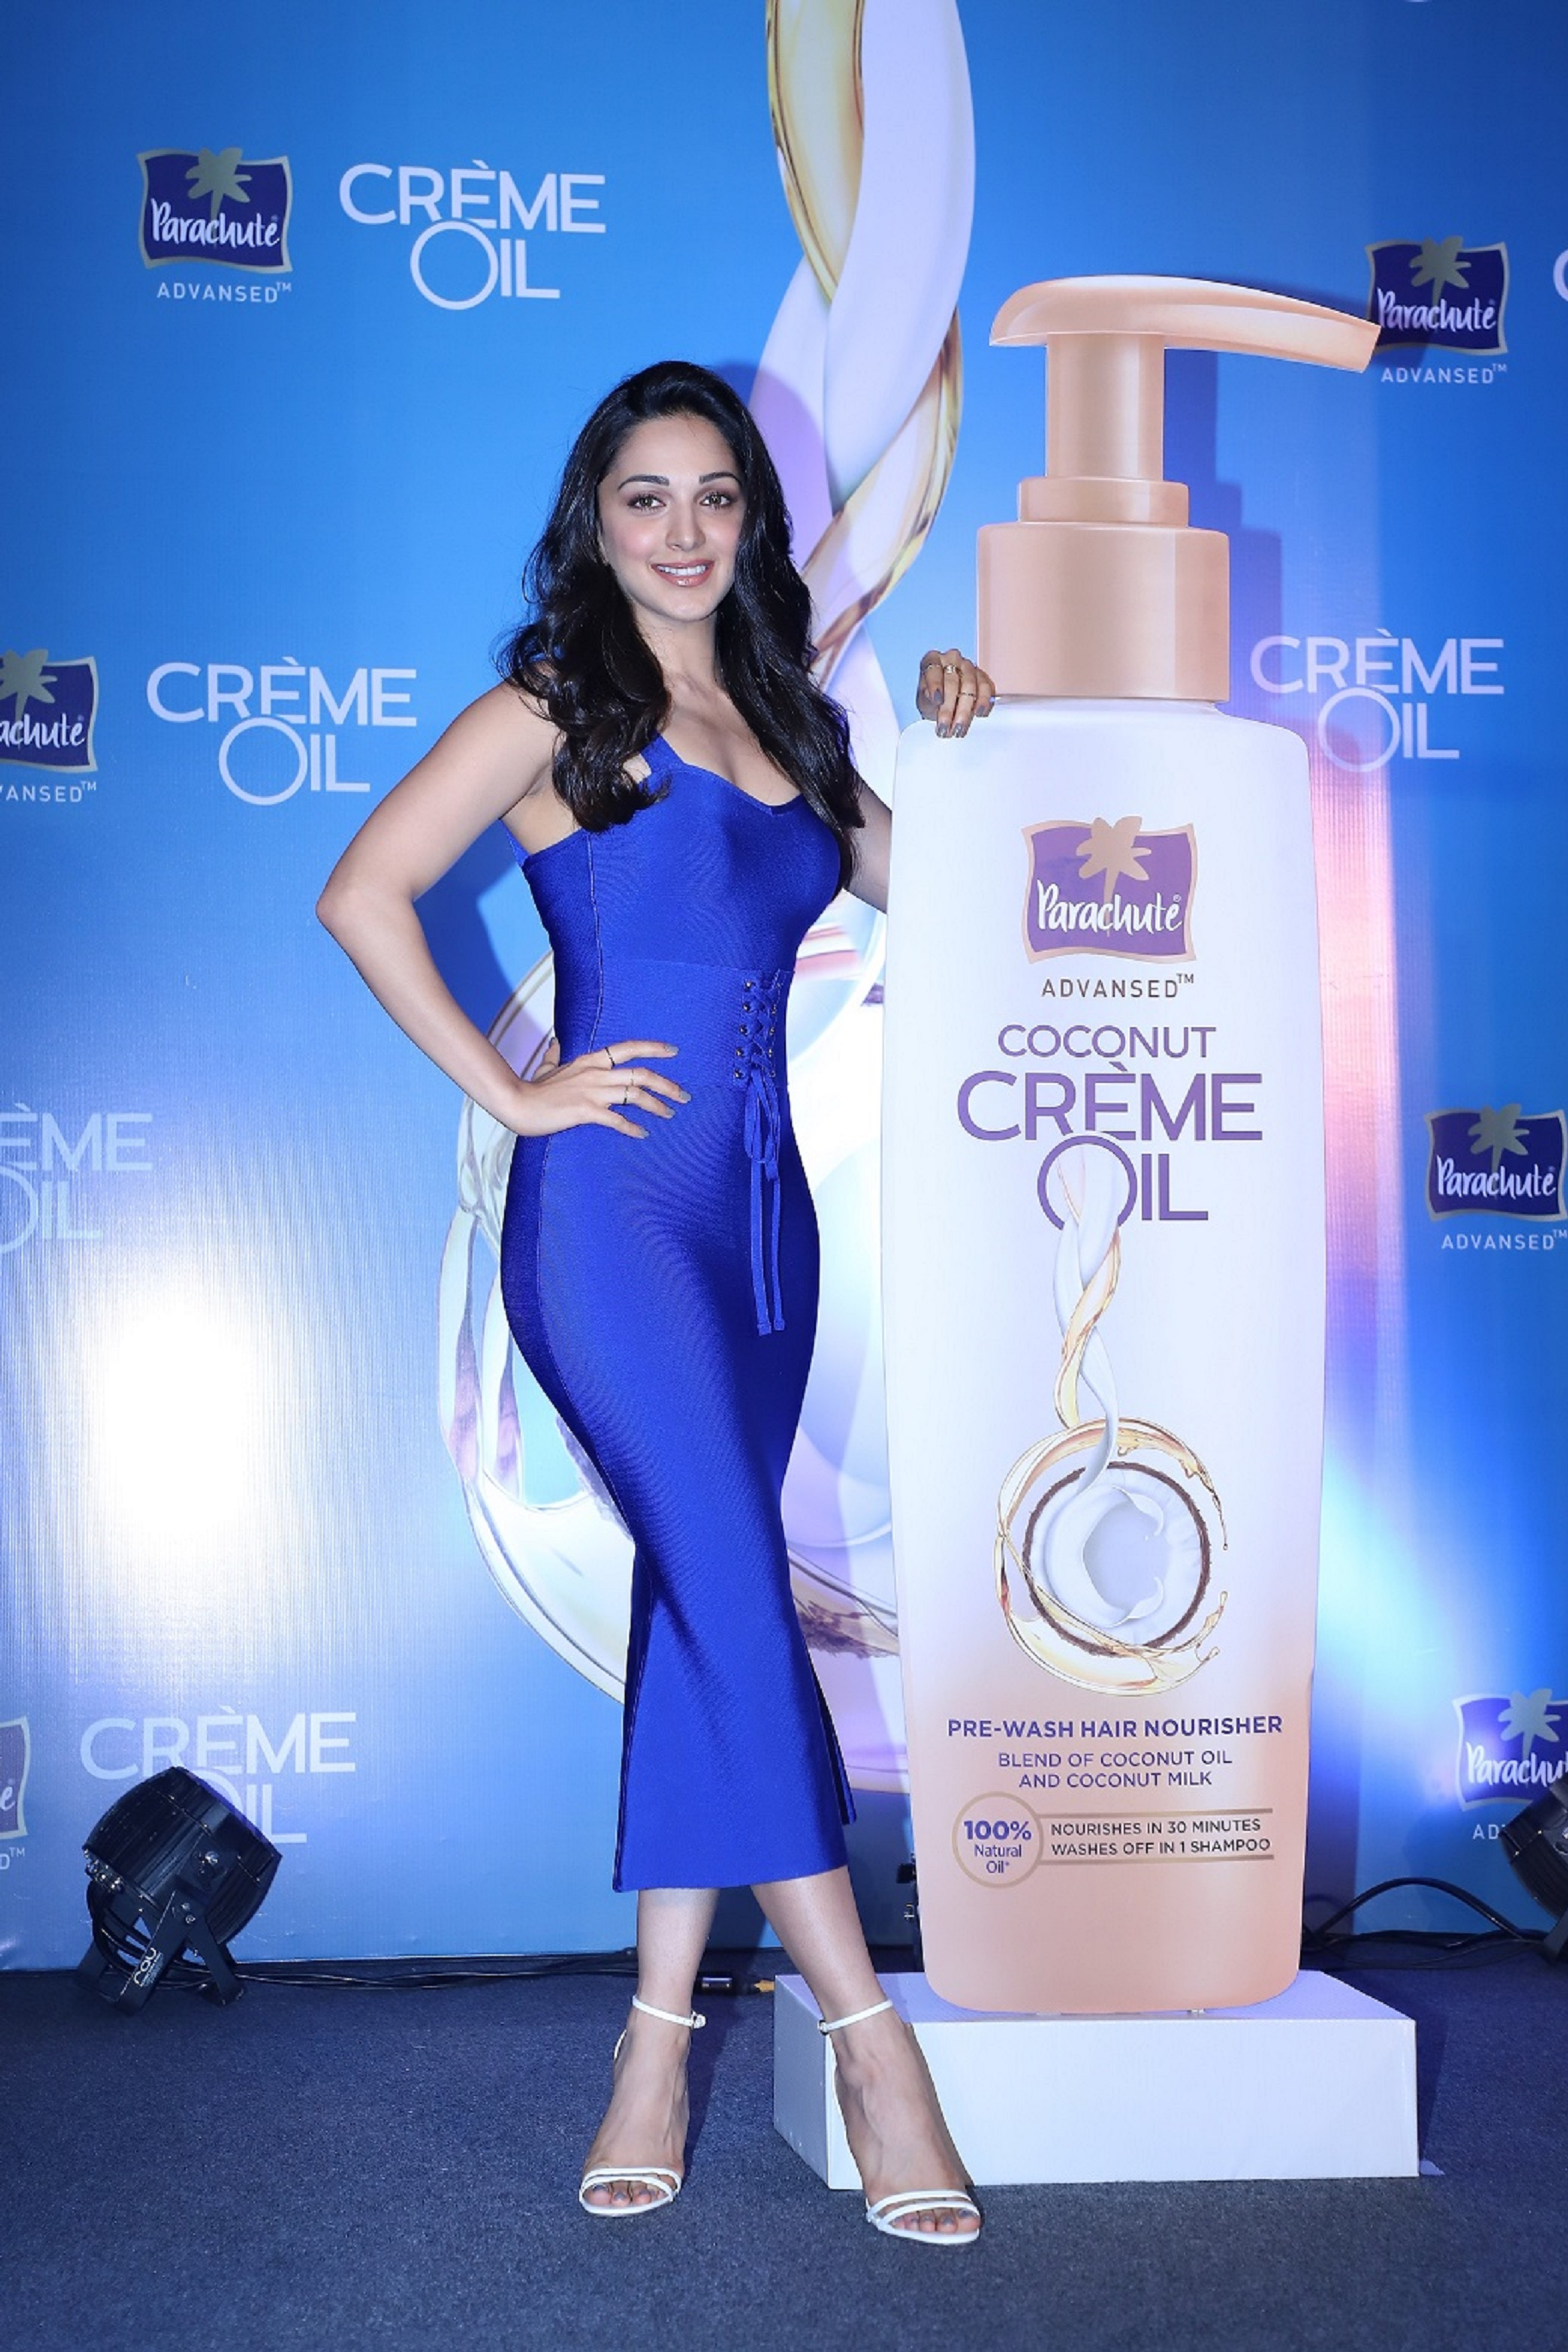 Kiara Advani at the unveiling of Parachute Advansed Coconut Creme Oil, a new age solution to oiling_1